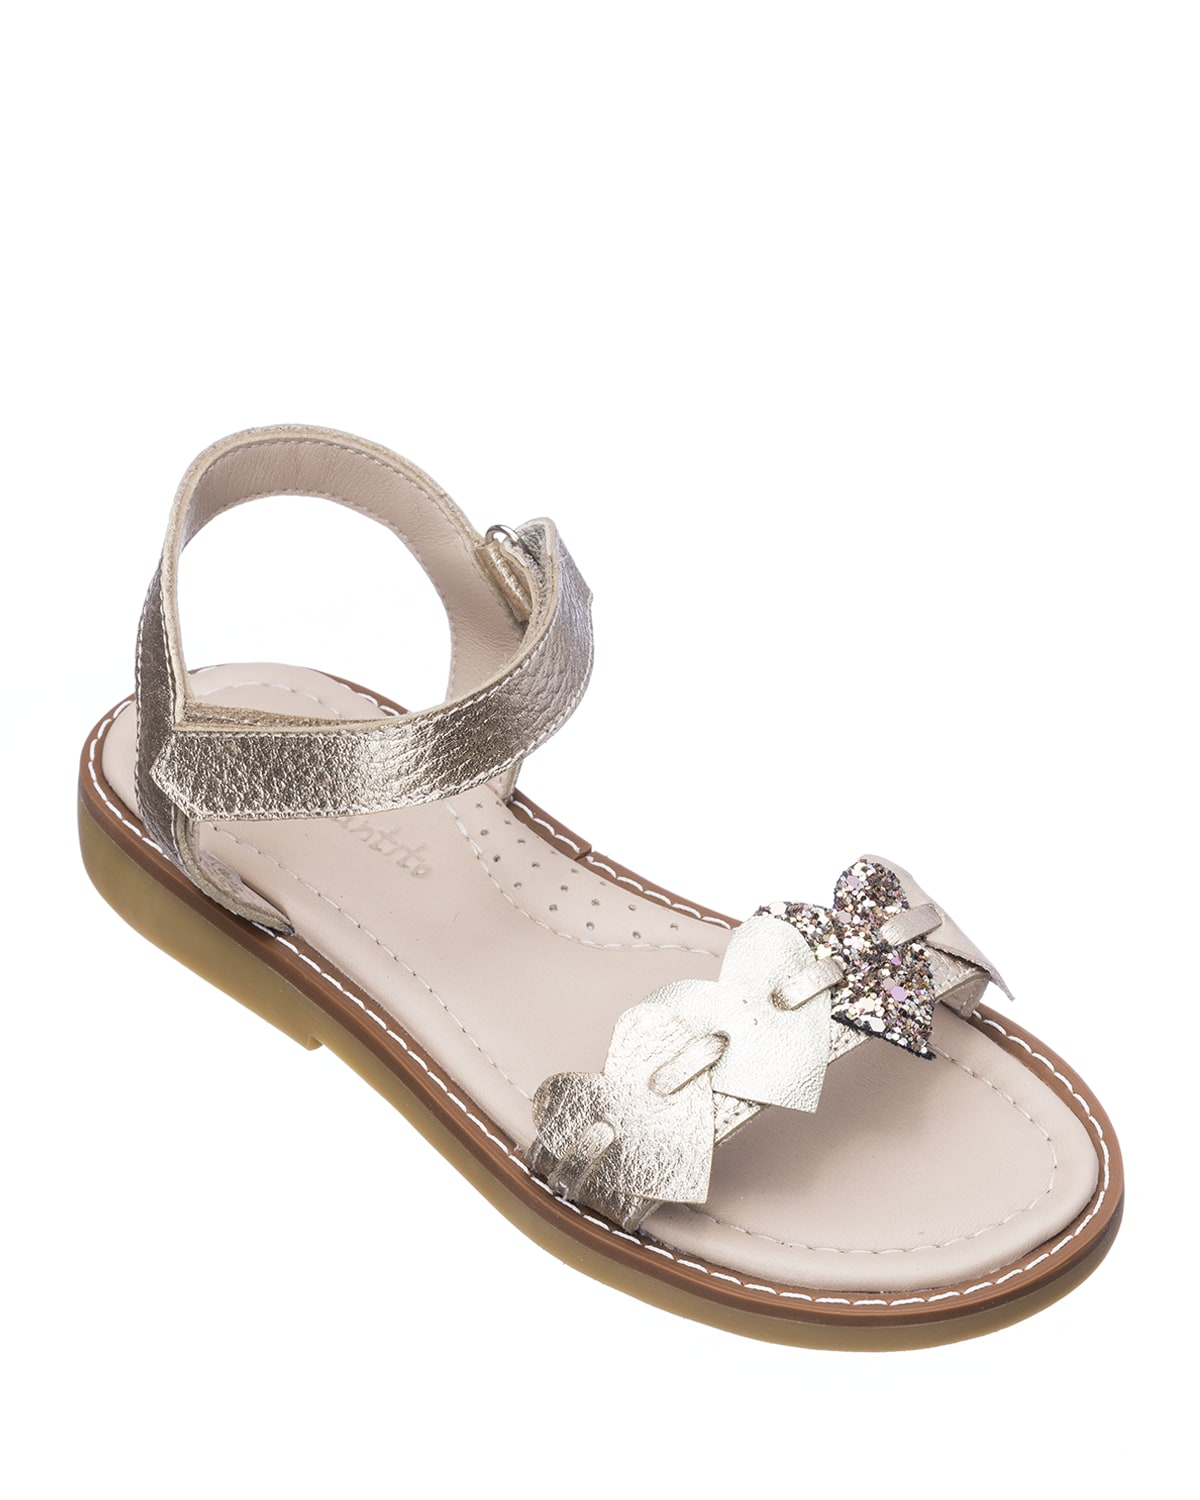 Girls' Leather Heart Sandals